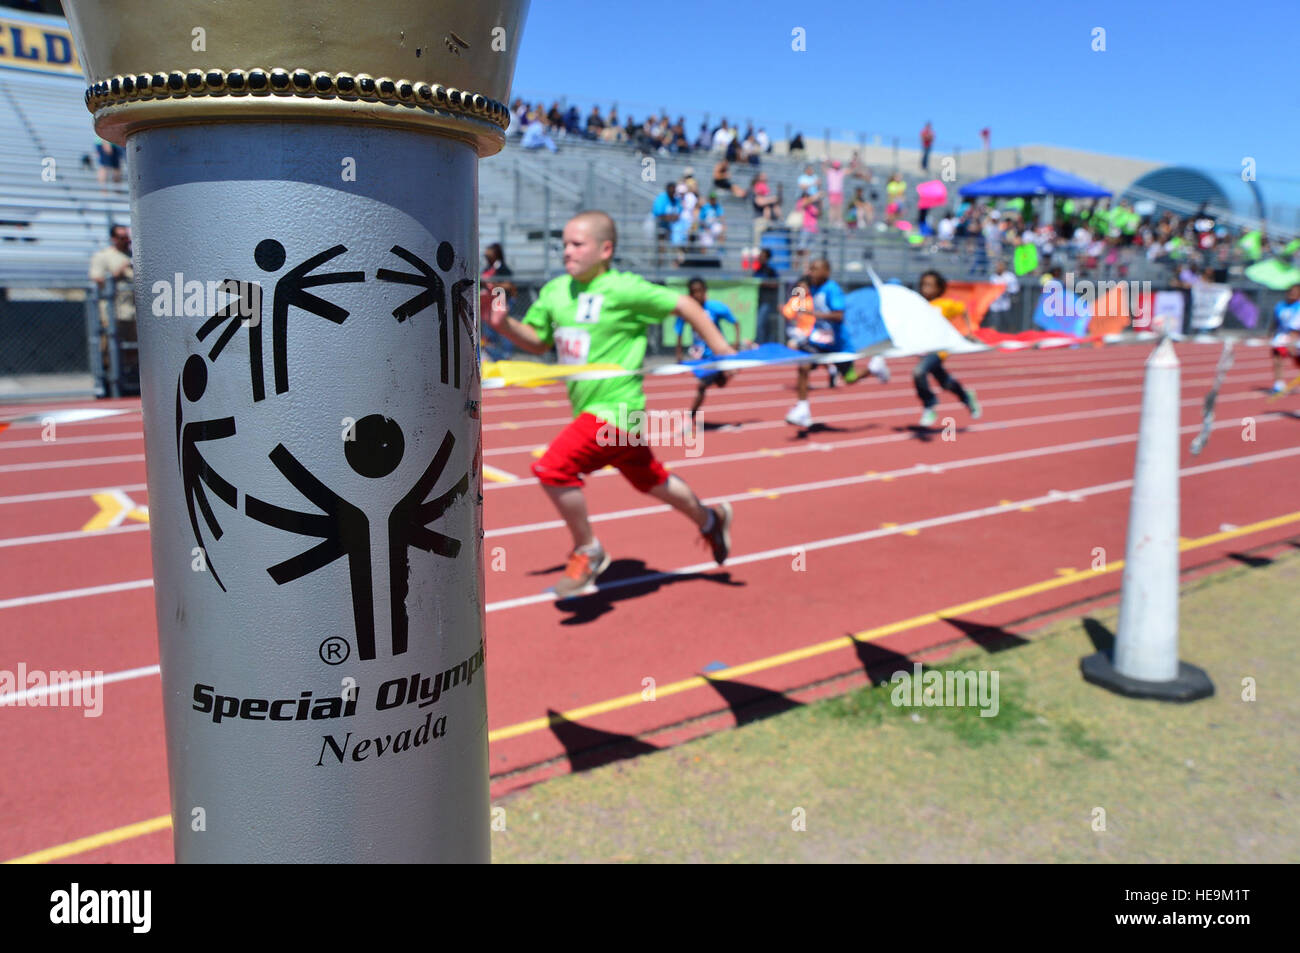 Children competing in the 50-meter race pass the Nevada Special Olympics torch at Cheyenne High School in Las Vegas - Stock Image